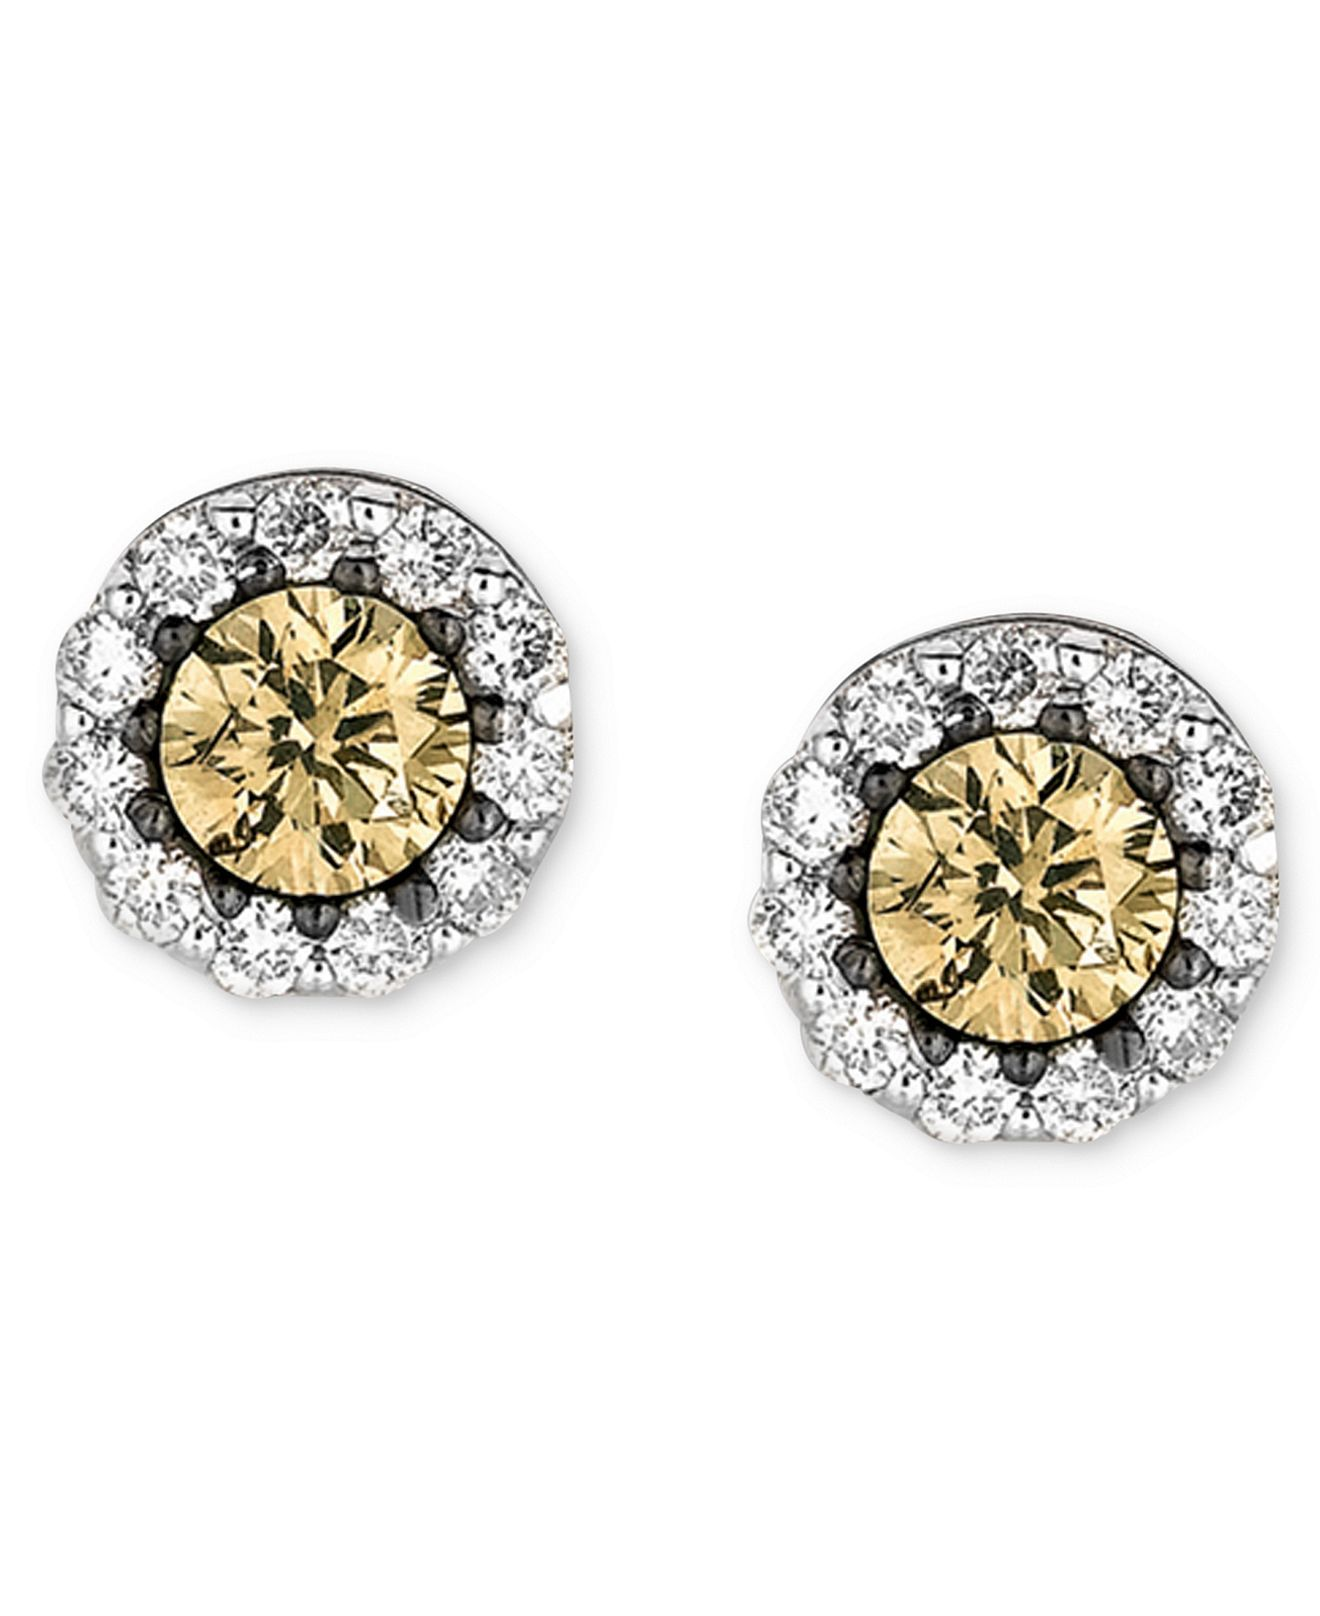 chocolate sale id master jewelry at diamond for old stud platinum cut earrings j european